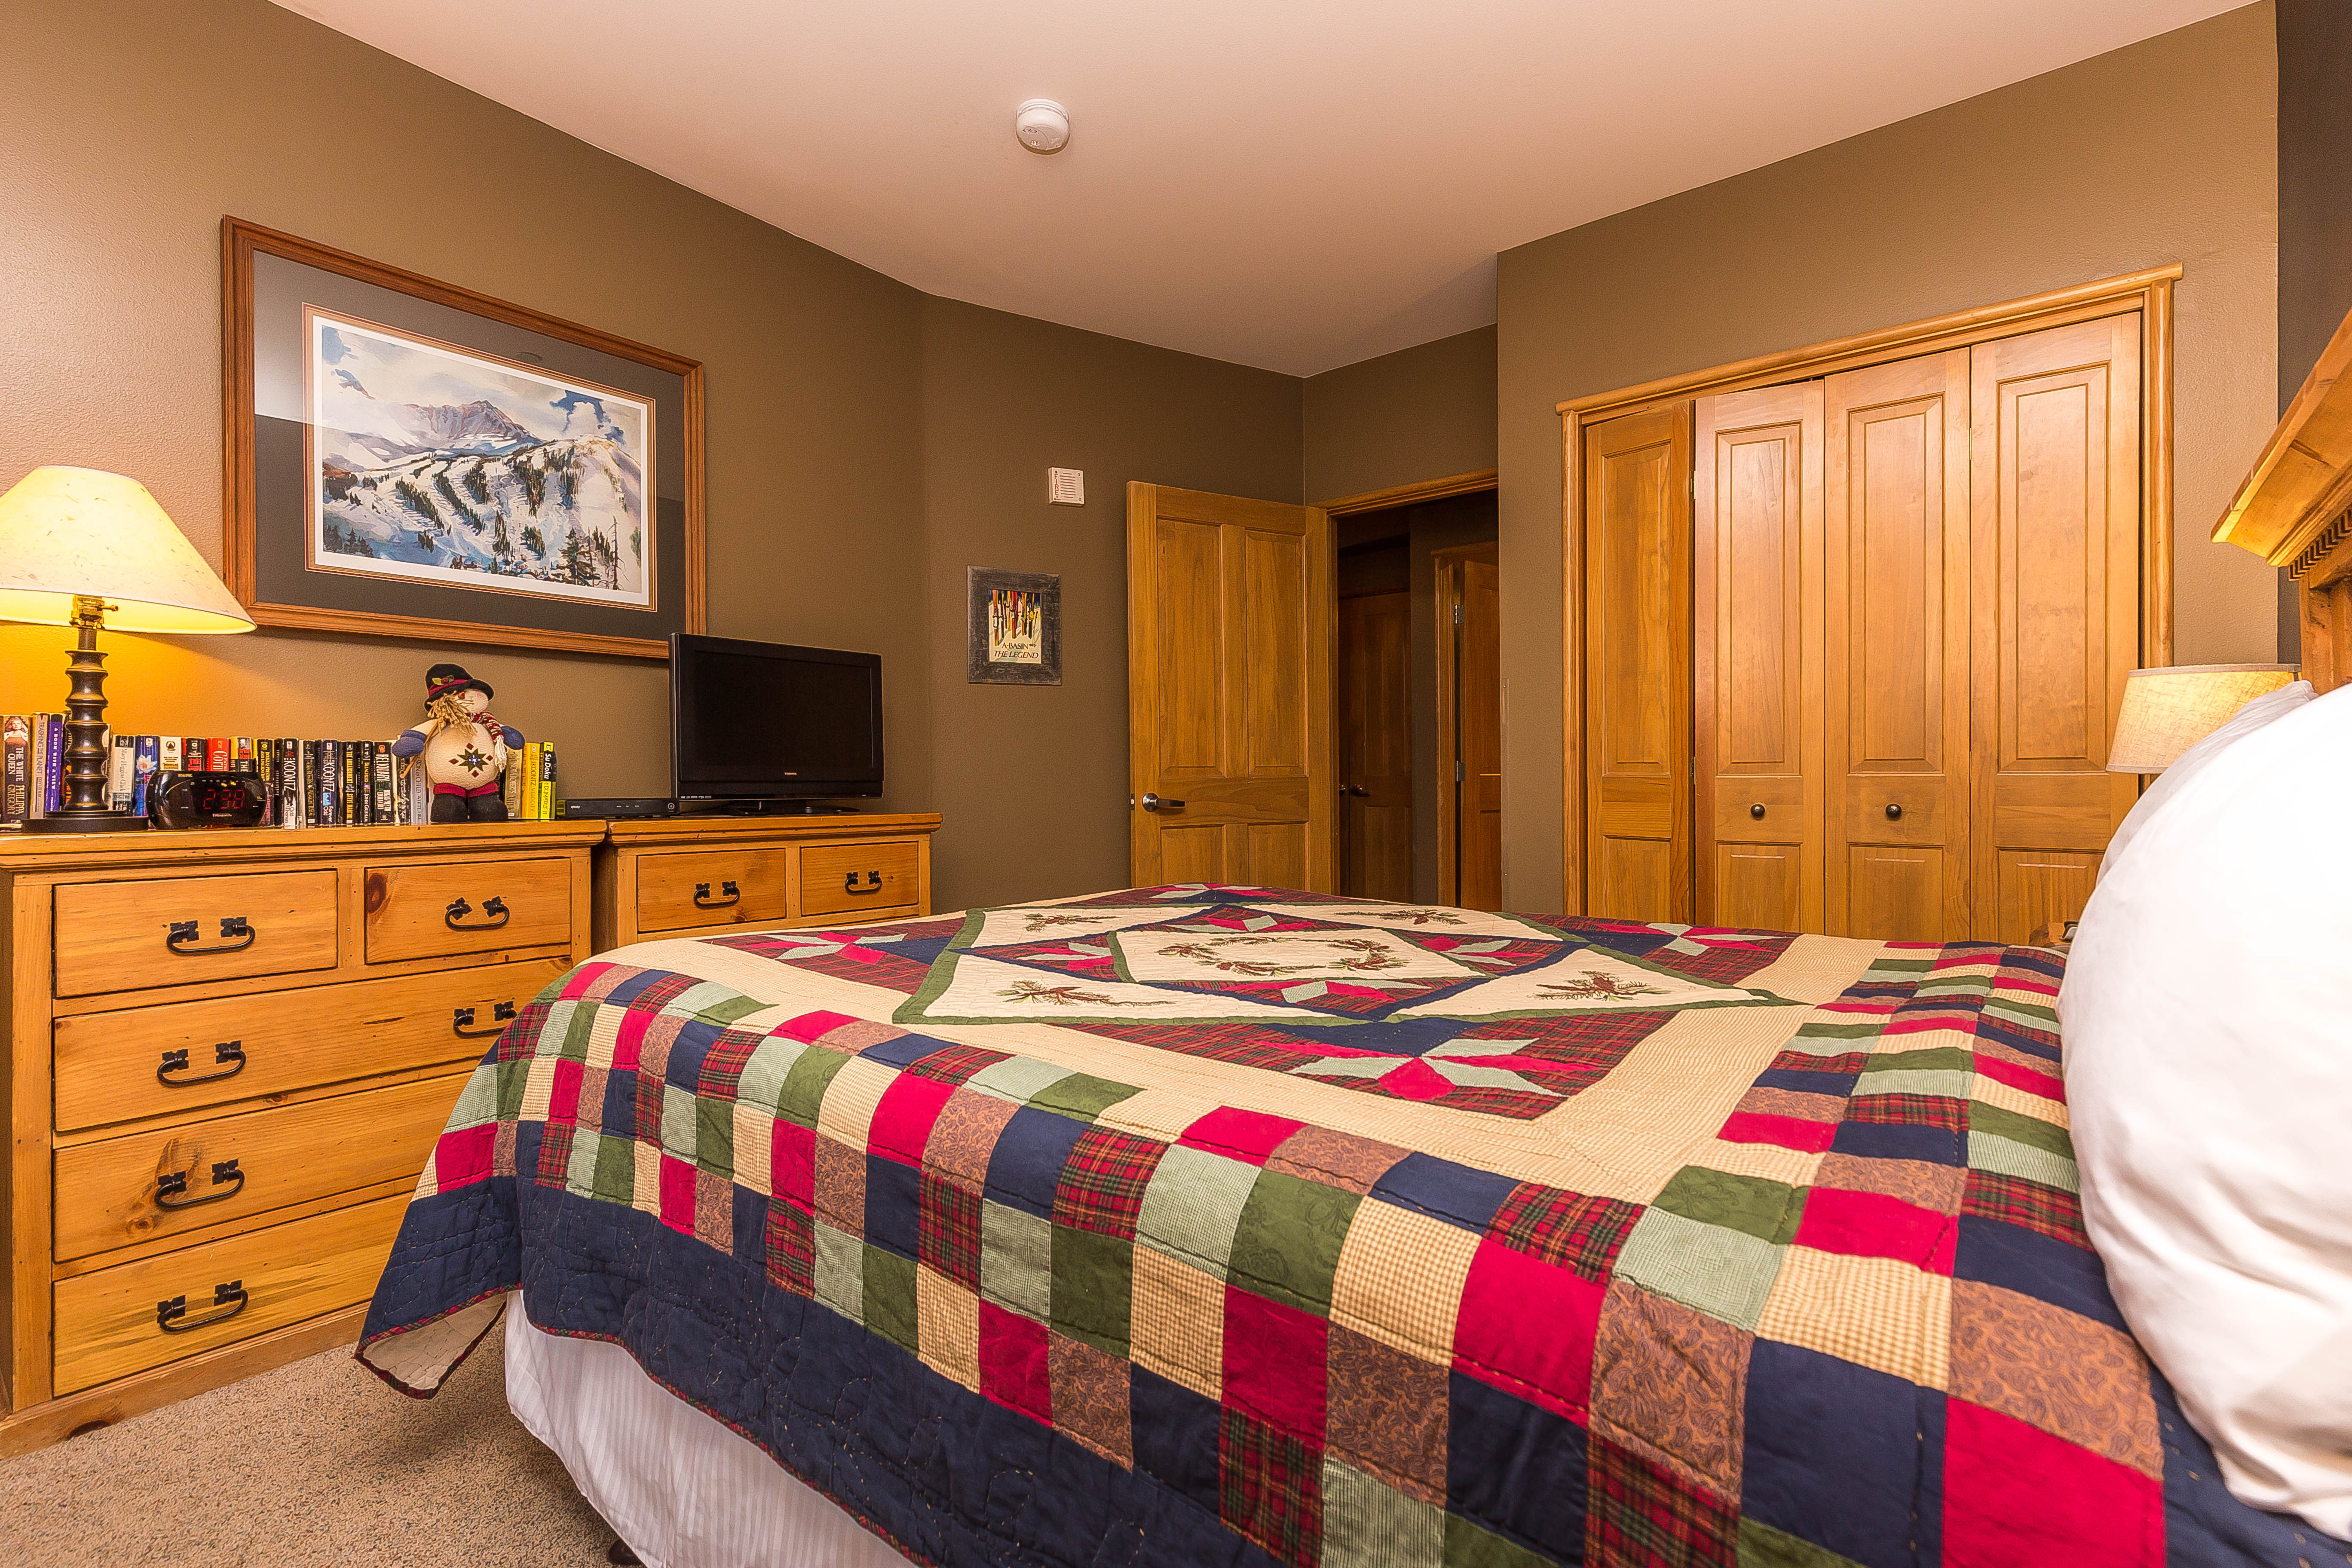 The bedroom features a queen-sized bed and a flat screen TV with a DVD player.